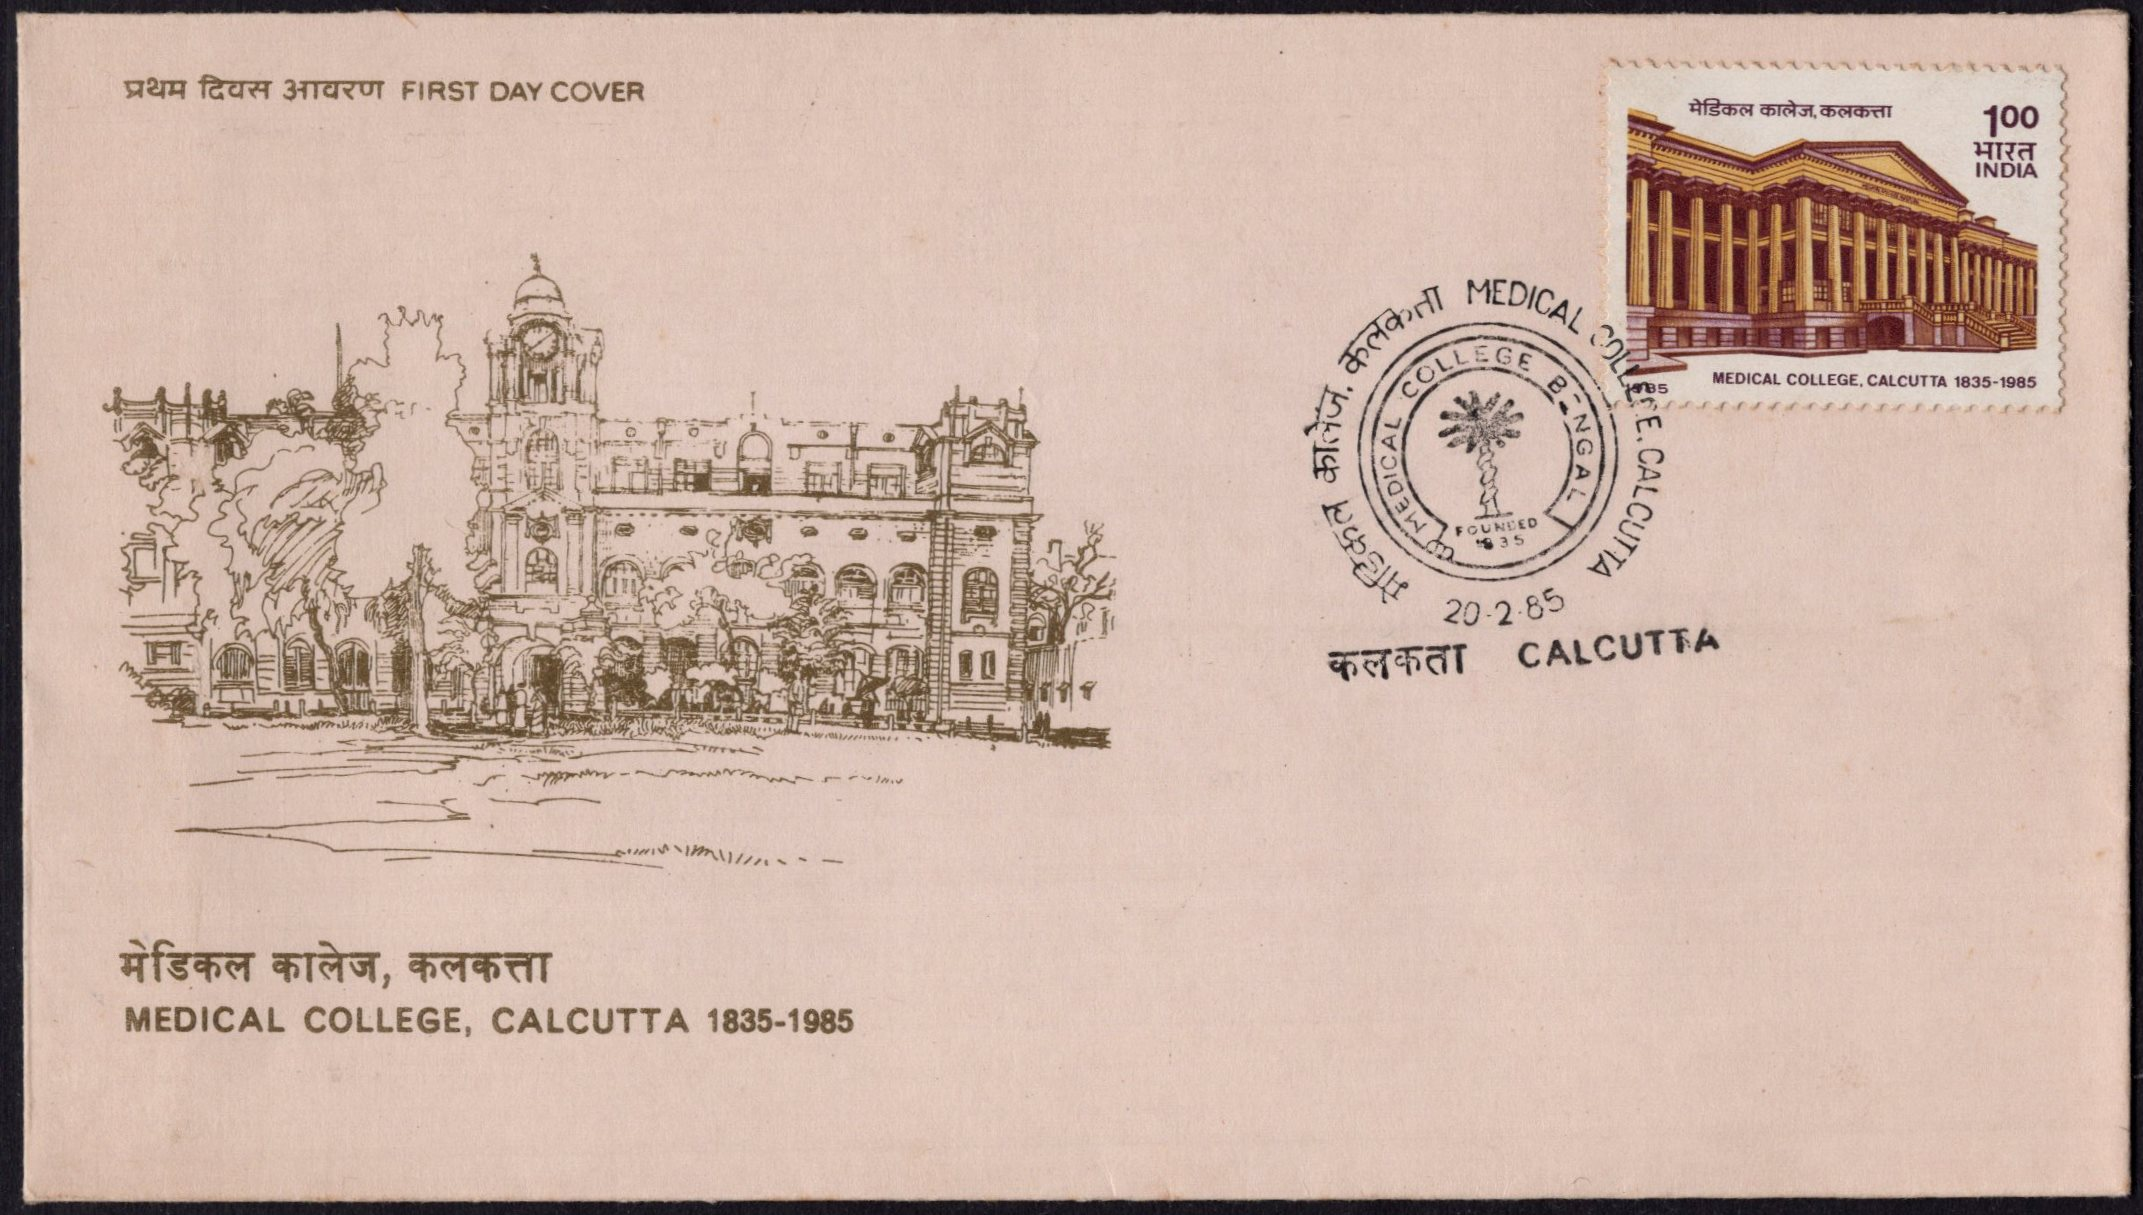 India 1985 First Day Cover FDC Medical College Calcutta Cancel (F2037)